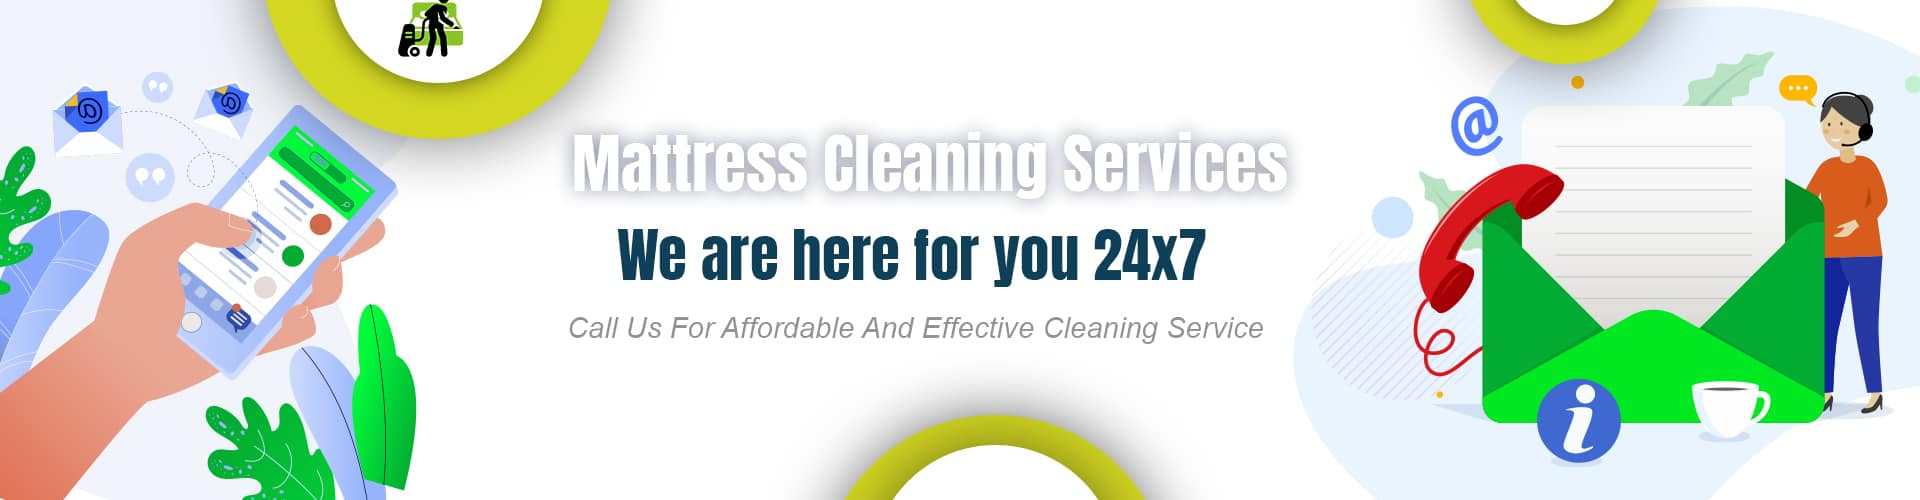 Contact Us For Mattress Cleaning Services